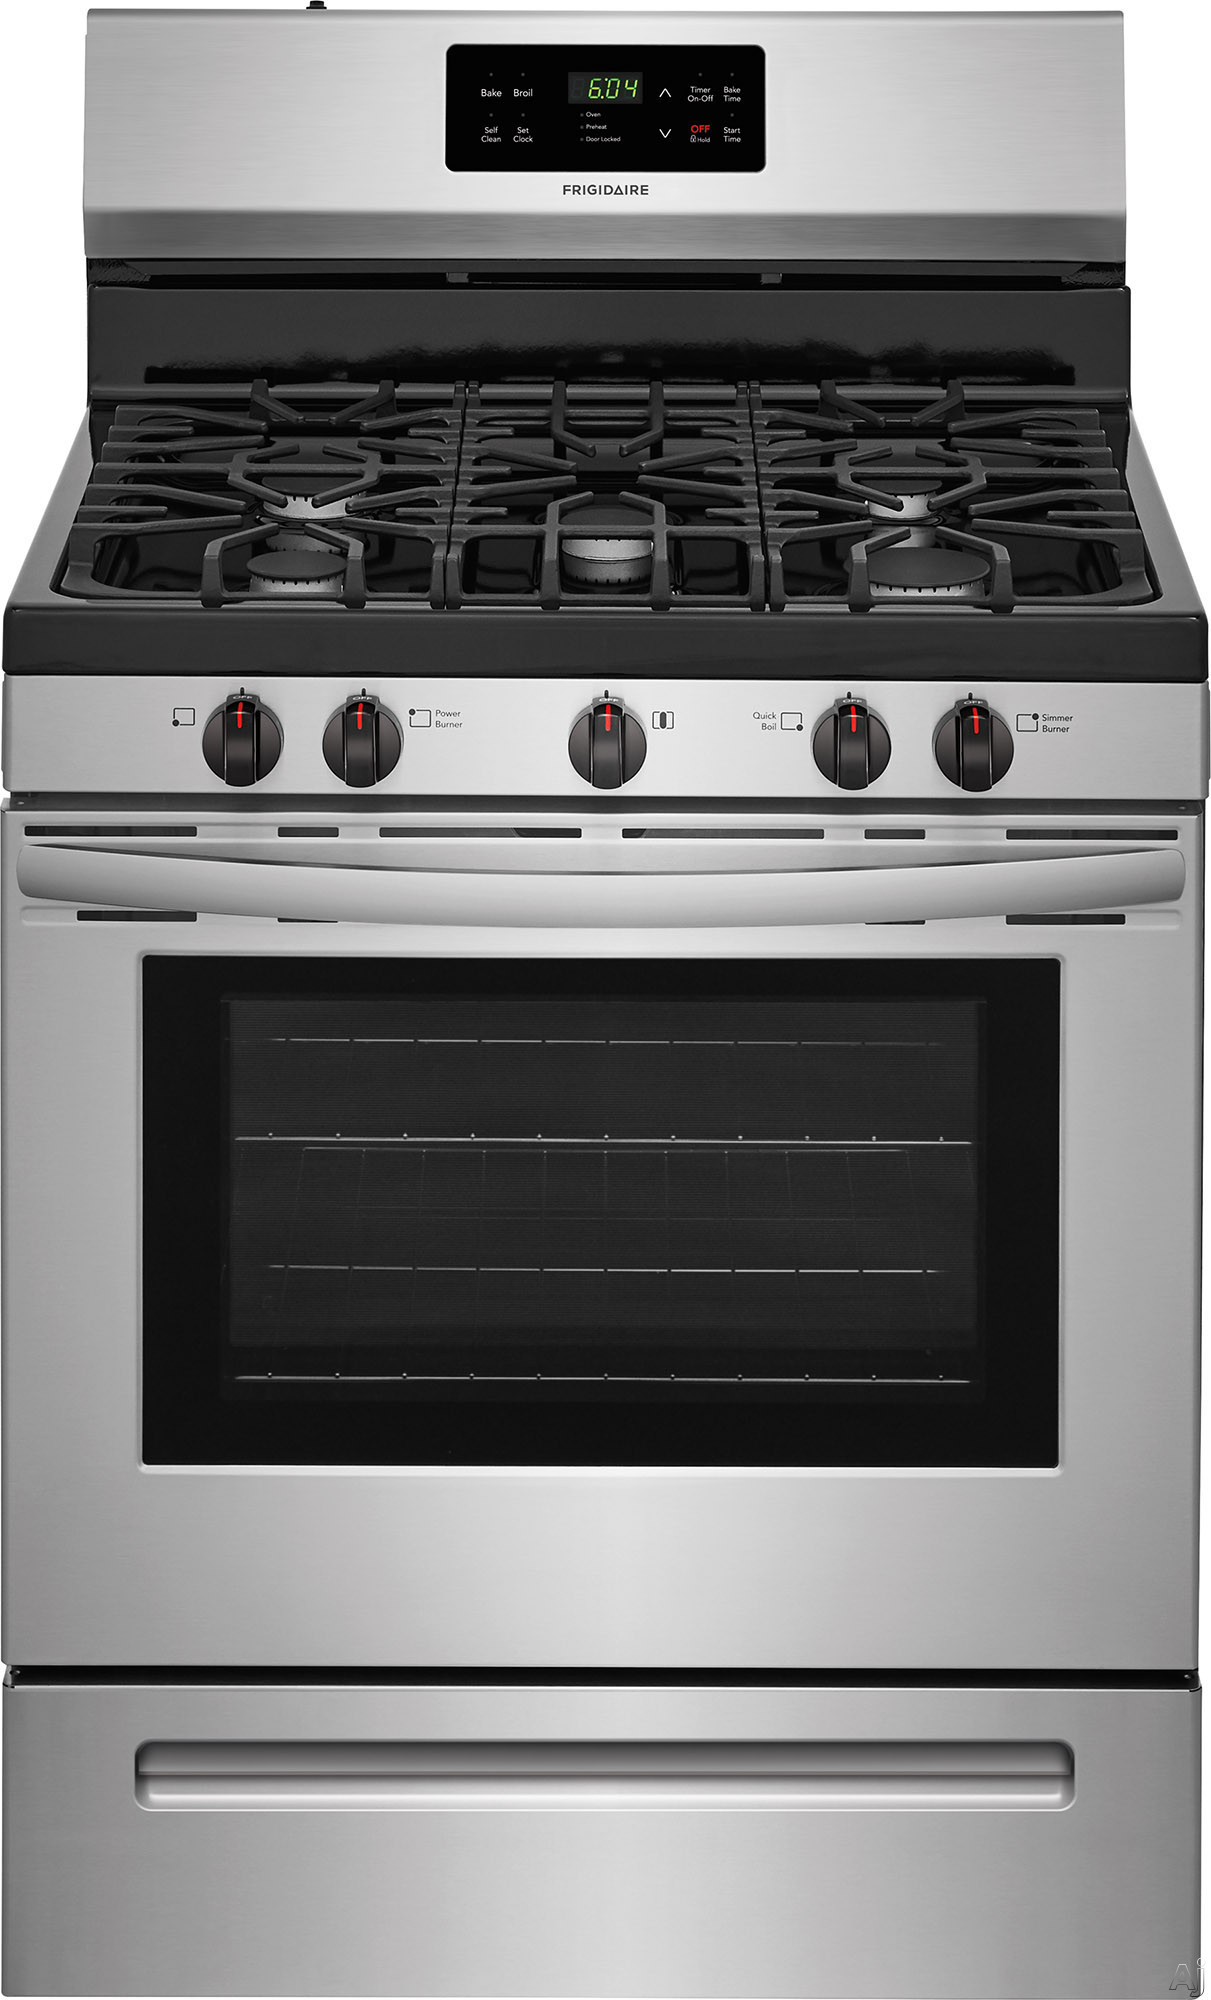 """Frigidaire FFGF3054TS 30 Inch Freestanding Gas Range with Simmer Burner, Quick Boil, Store-Moreâ""""¢ Drawer, One-Touch Self-Clean, Continuous Grates, 5 Sealed Burner and 5 cu. ft.: Stainless Steel"""